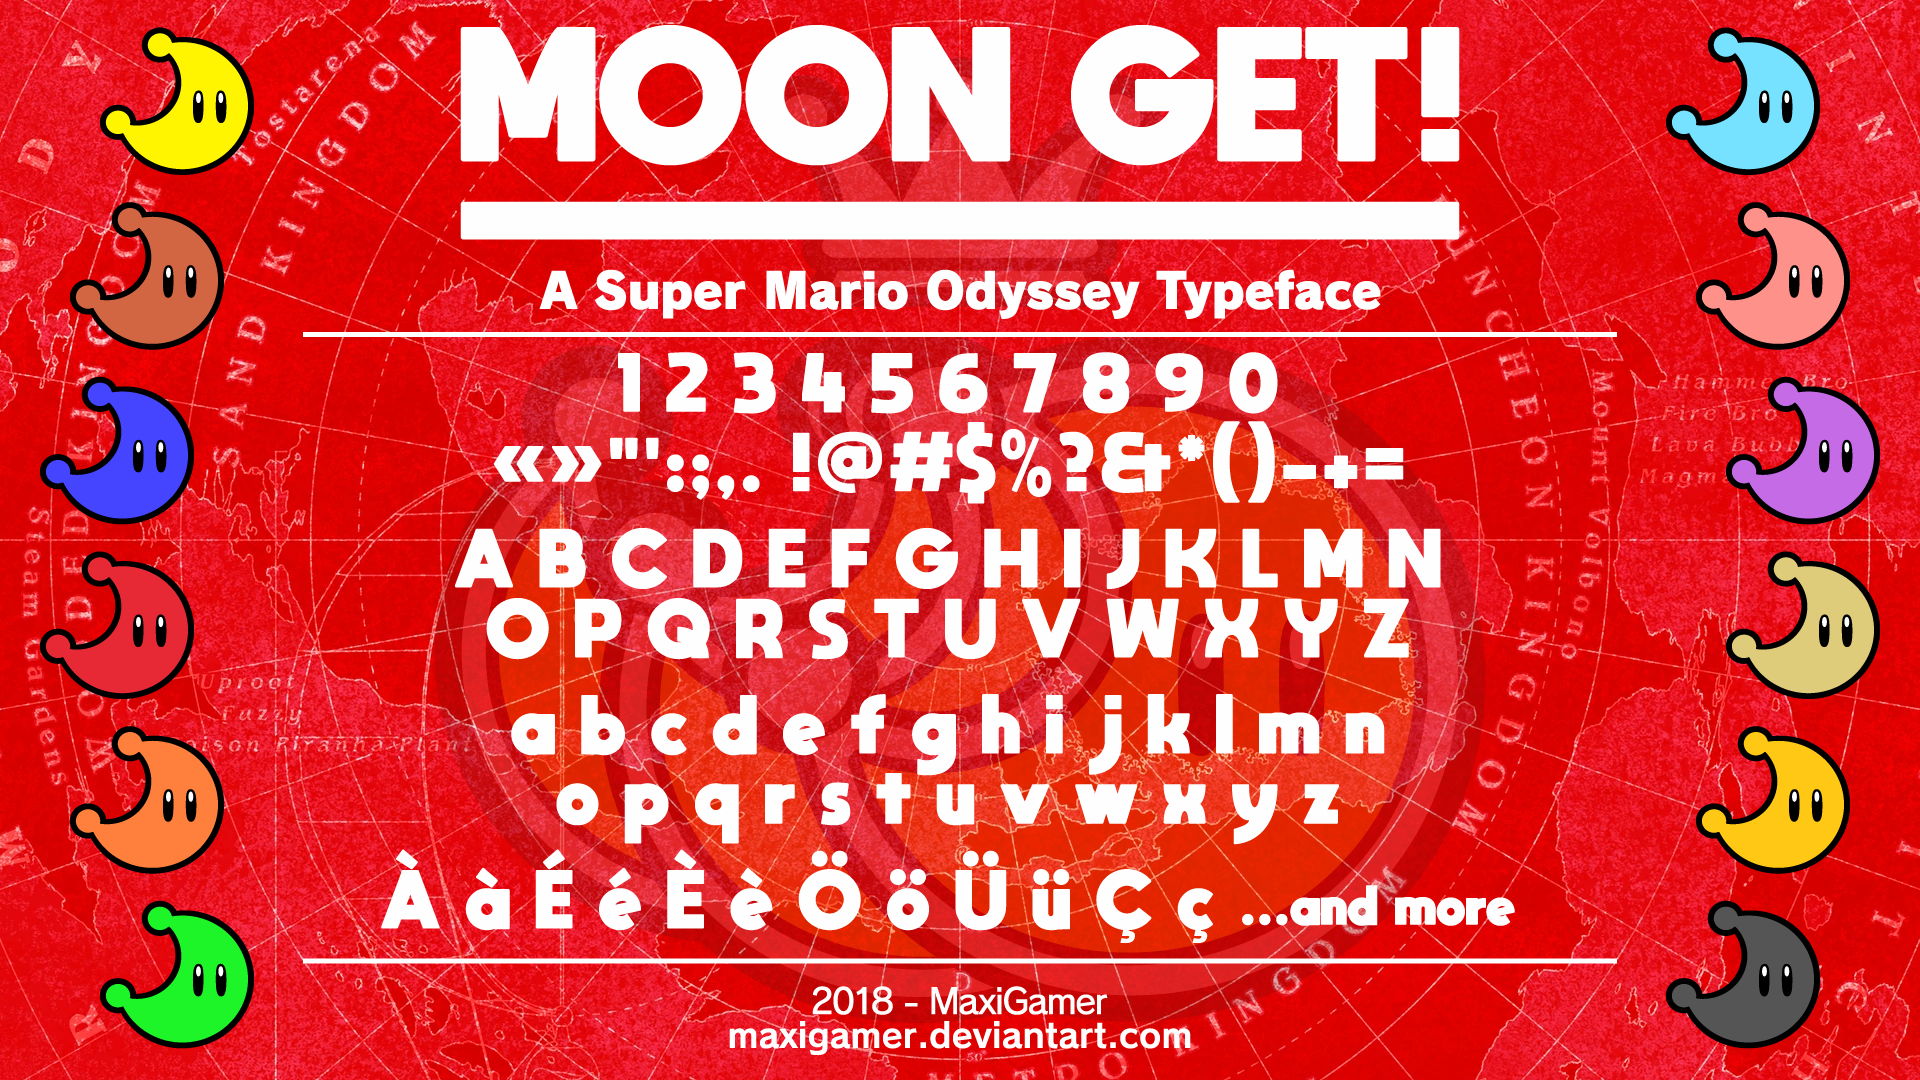 OUTDATED] MOON GET!: A Super Mario Odyssey Font by MaxiGamer